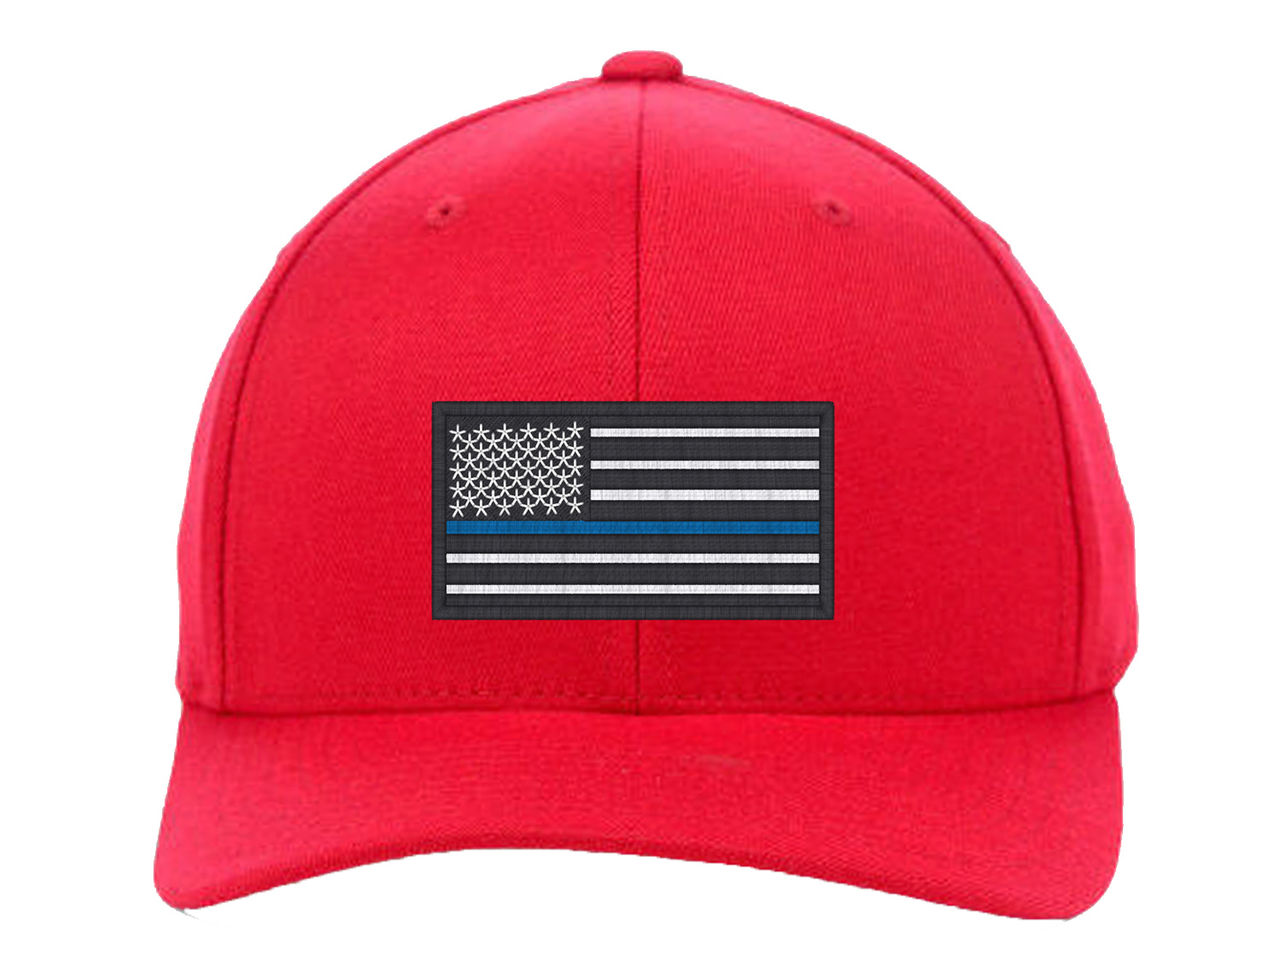 1279x964 Usa Flag Blue Line, Local Police Department Support Embroidered